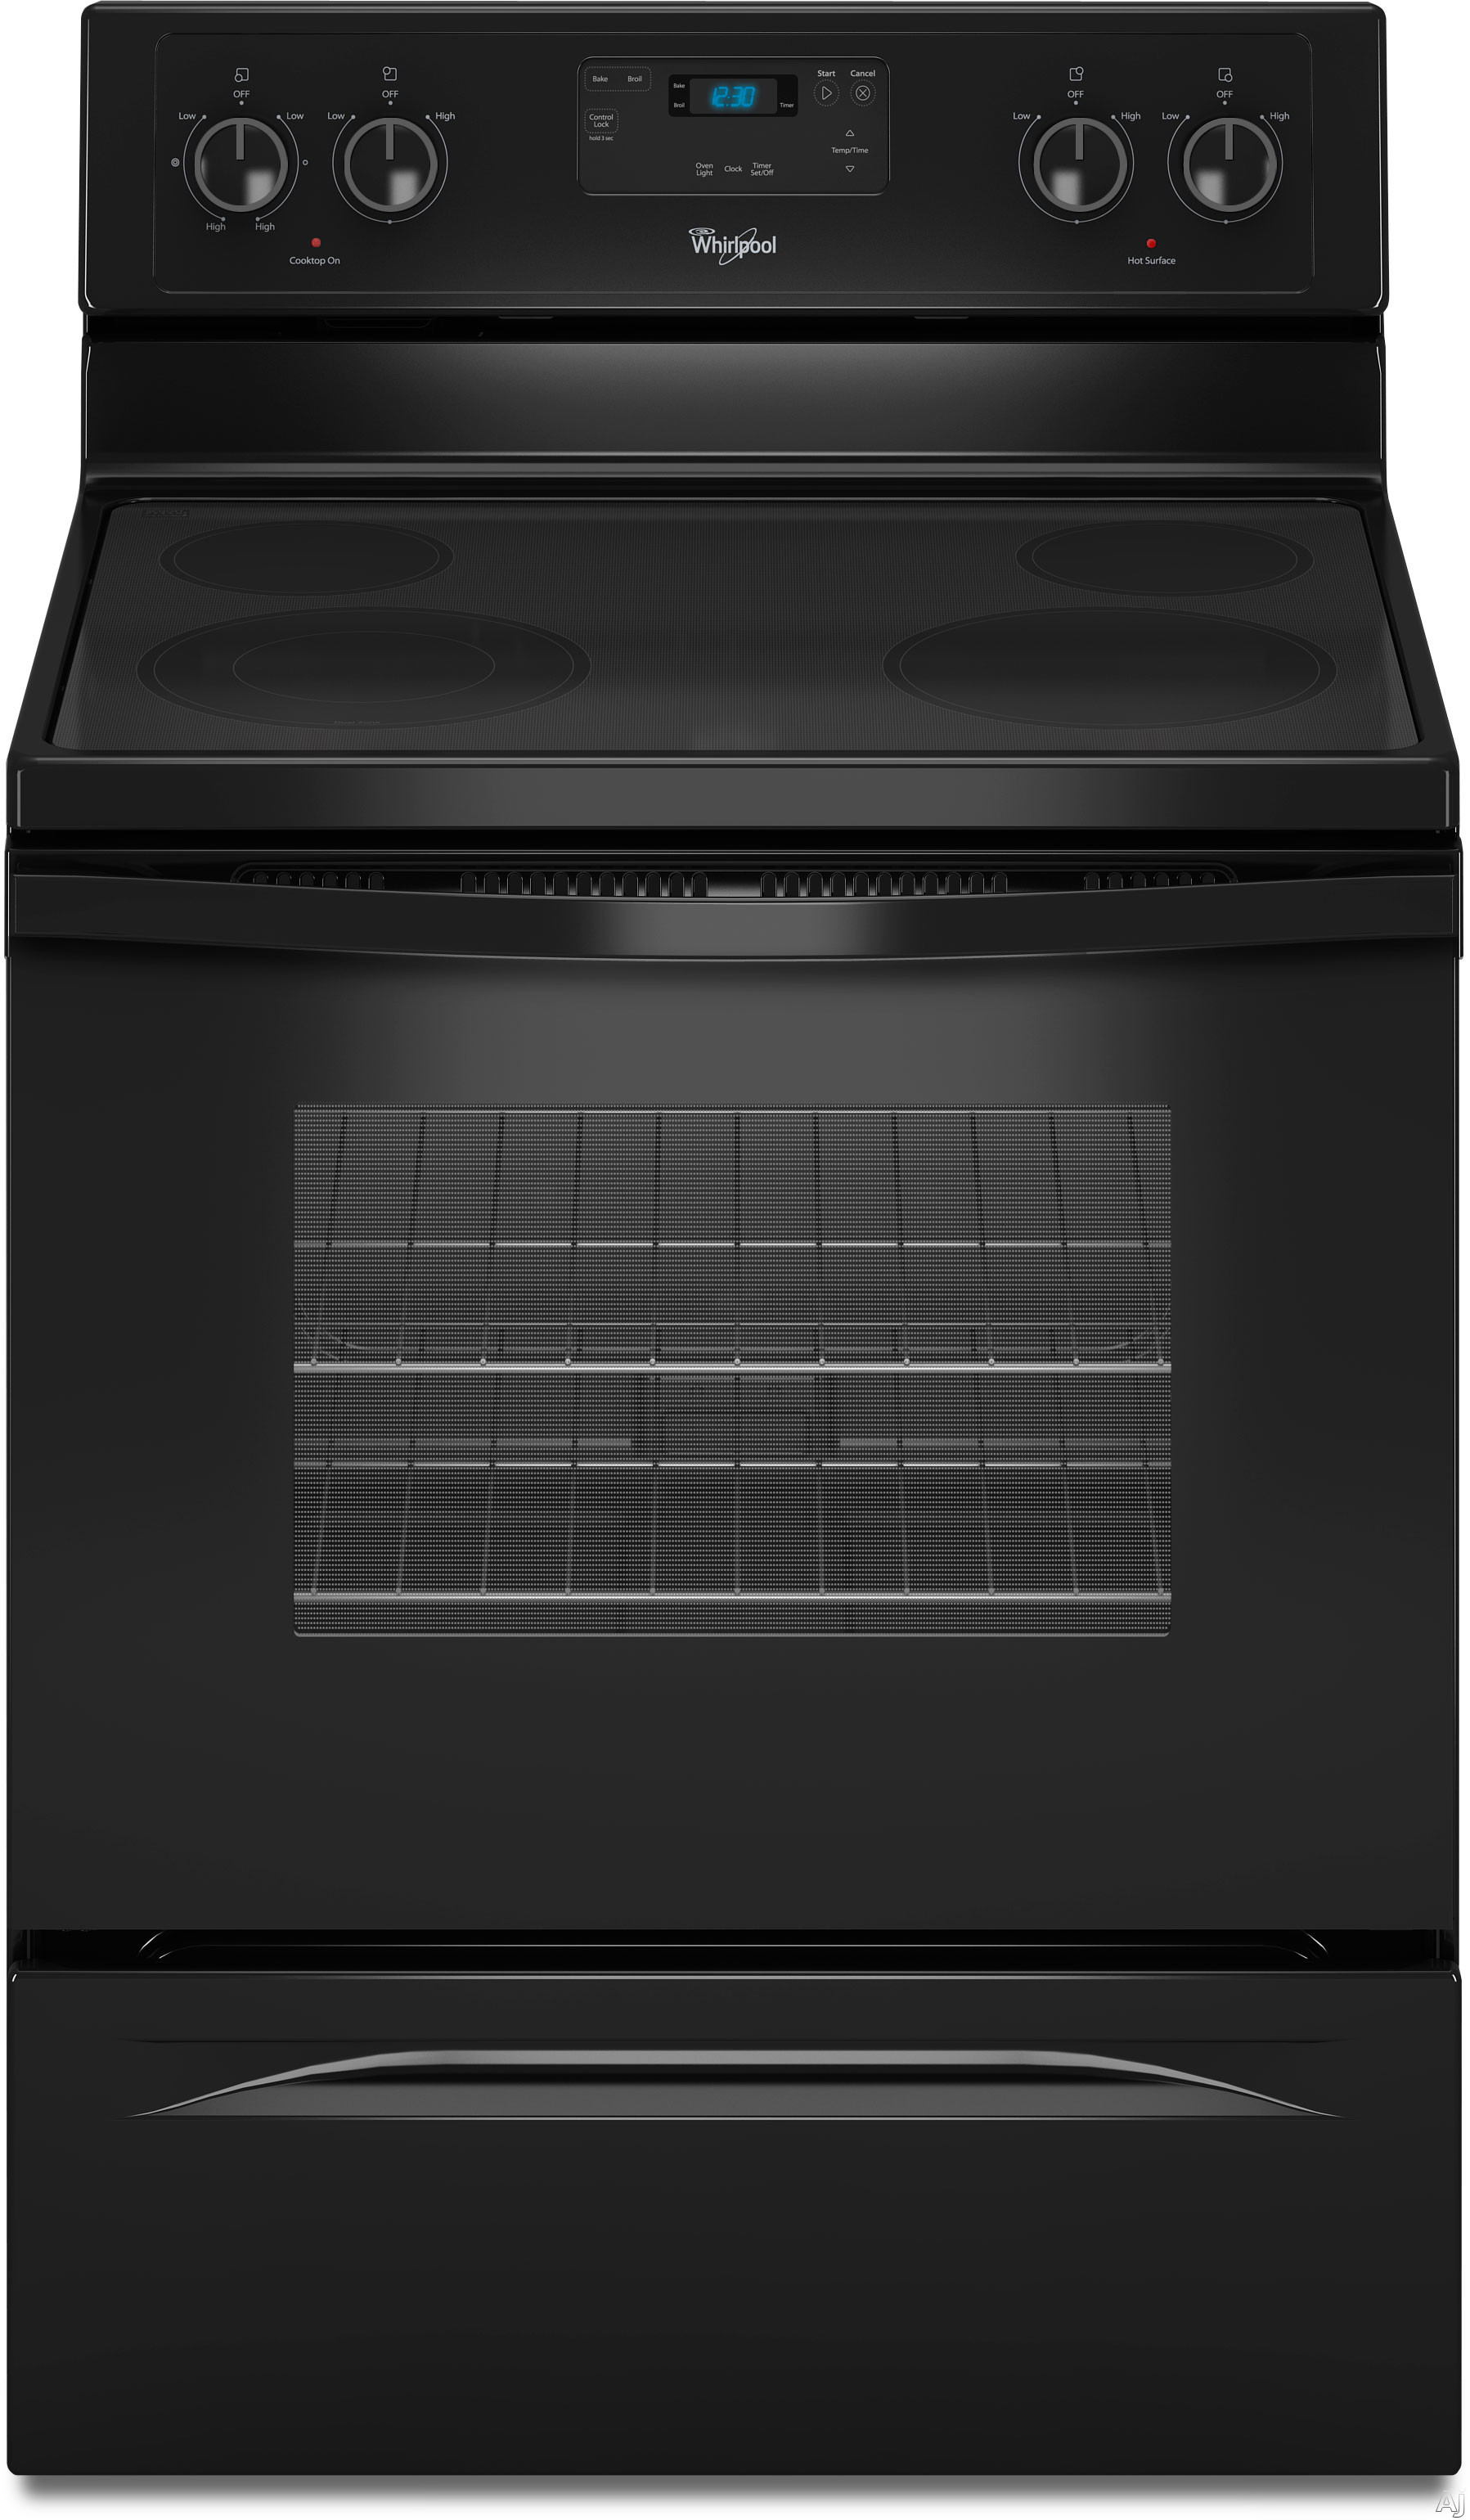 Whirlpool Wfe320m0a 30 Quot Freestanding Smoothtop Electric border=